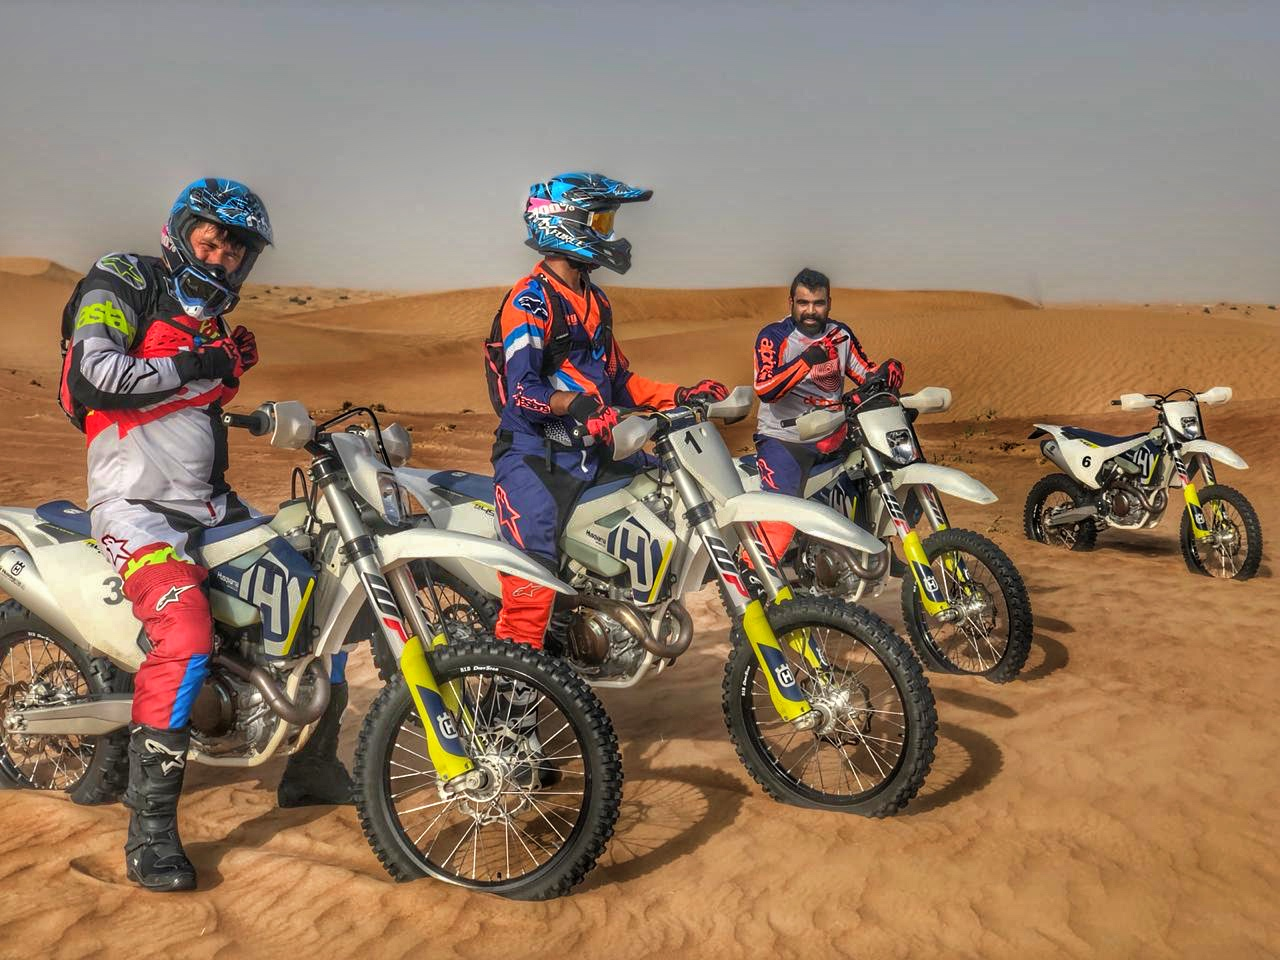 Desert Enduro Motorbike Tour - FULL DAY (8hrs) Minimum 2 riders